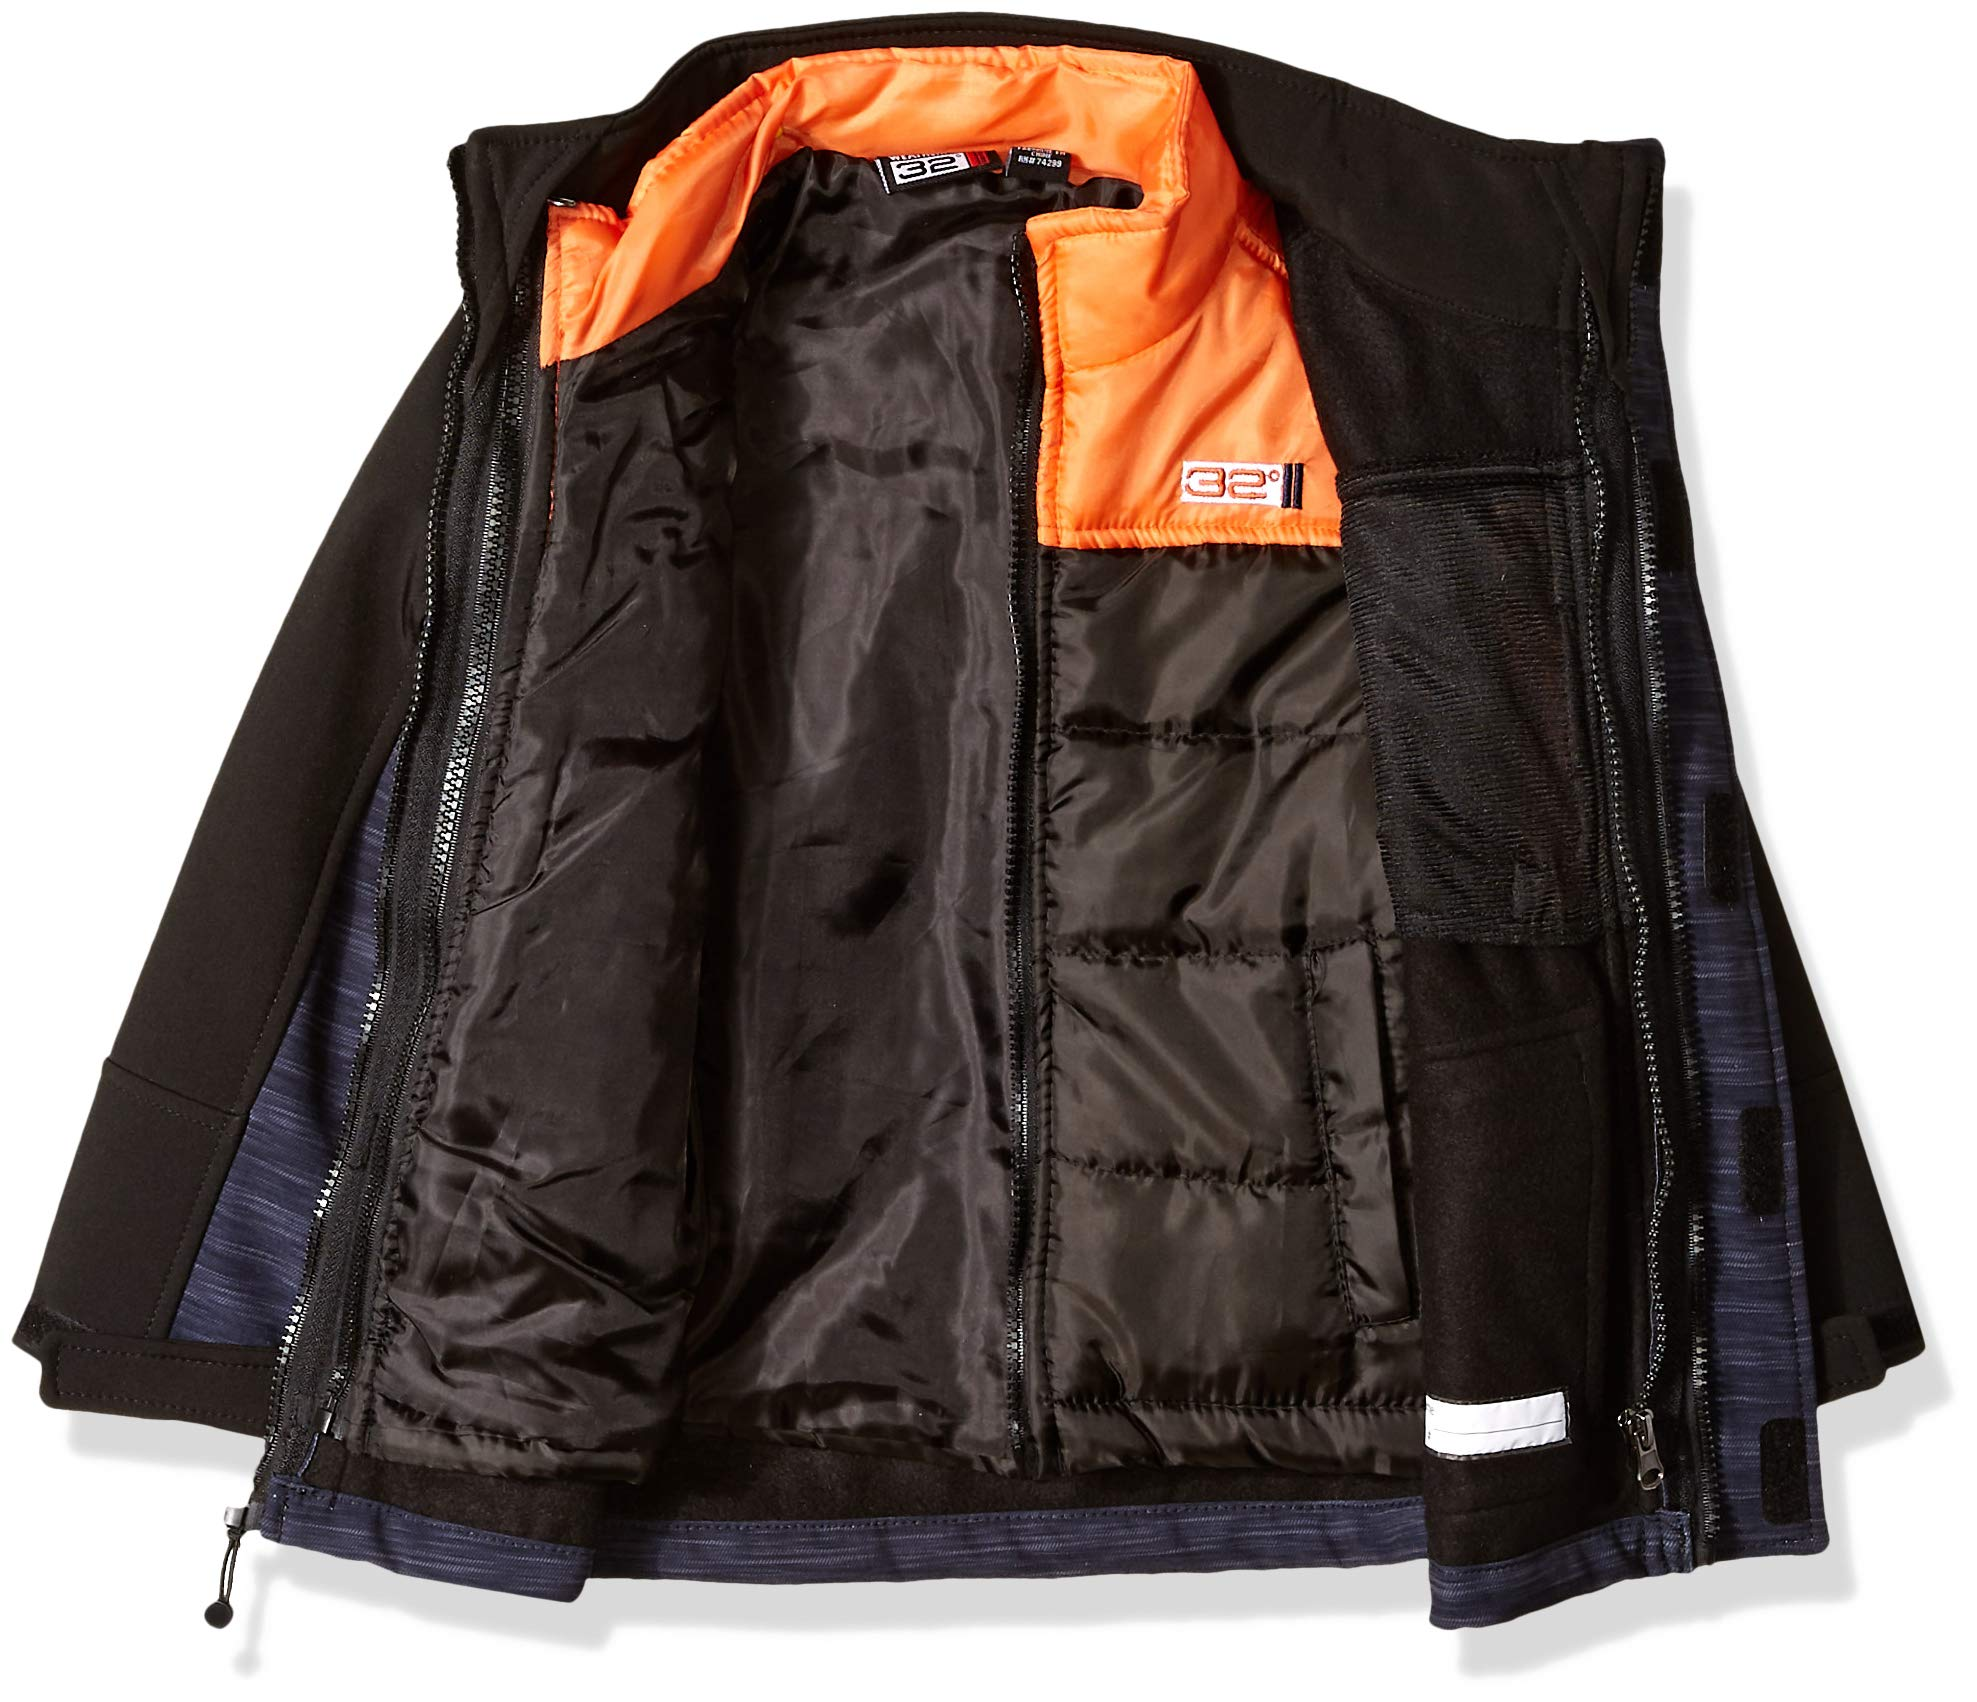 32 DEGREES Weatherproof Boys' Little Outerwear Jacket (More Styles Available), Softshell Systems Charcoal Heather/Black, 4 by 32 DEGREES (Image #3)